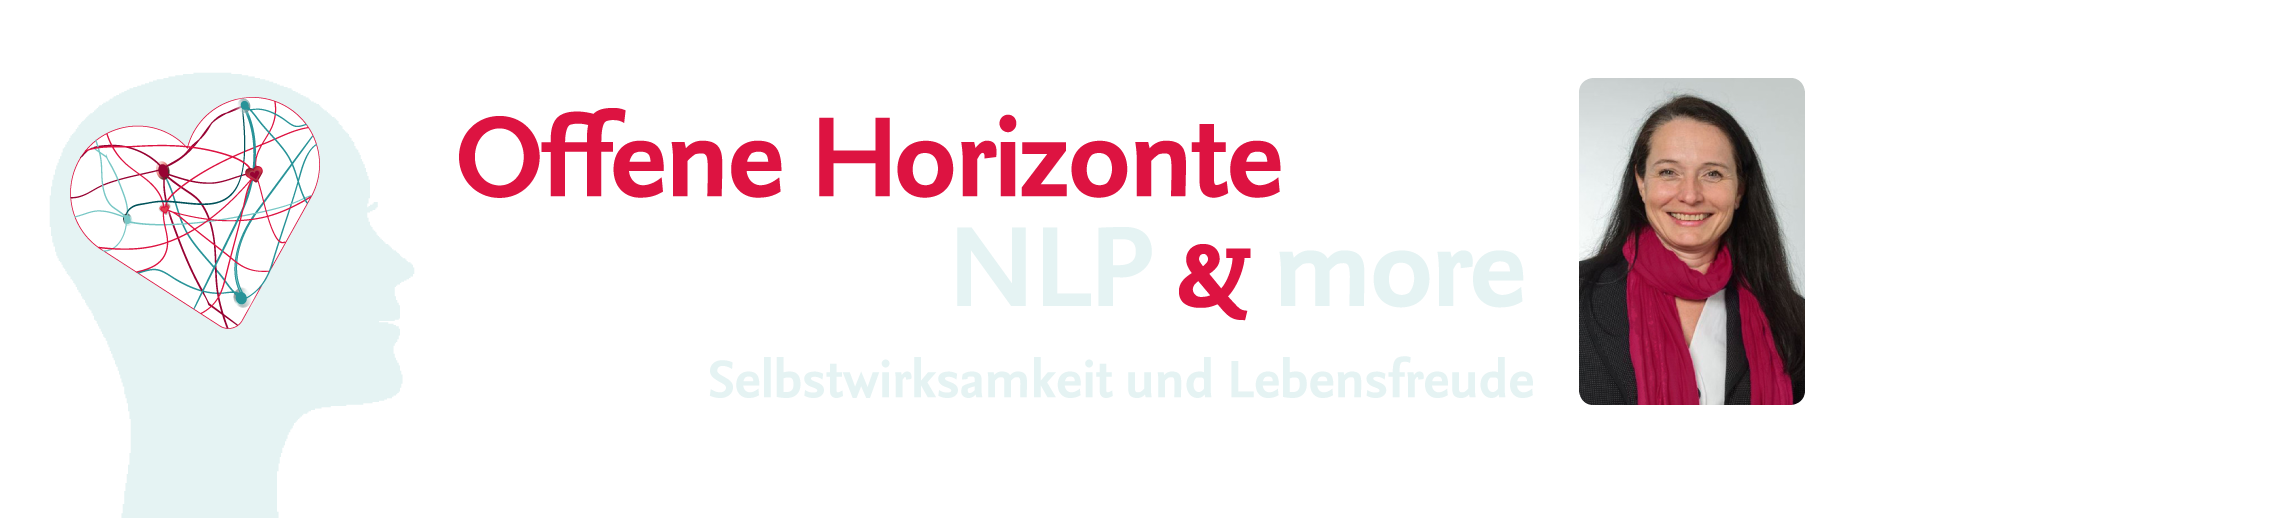 Offene Horizonte, NLP and more